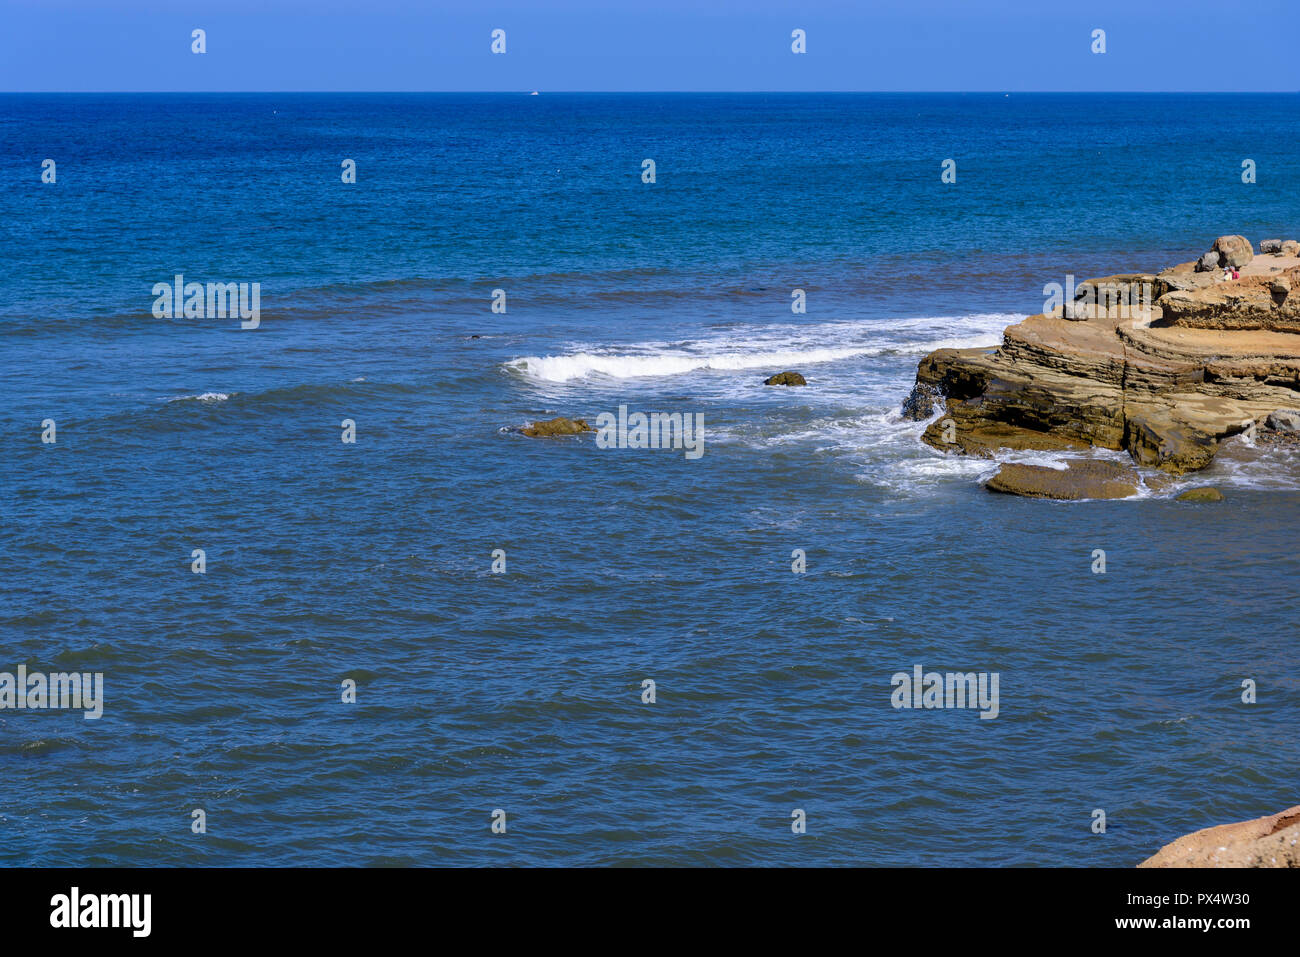 View of ocean and waves crashing onto rocks under a blue sky. - Stock Image